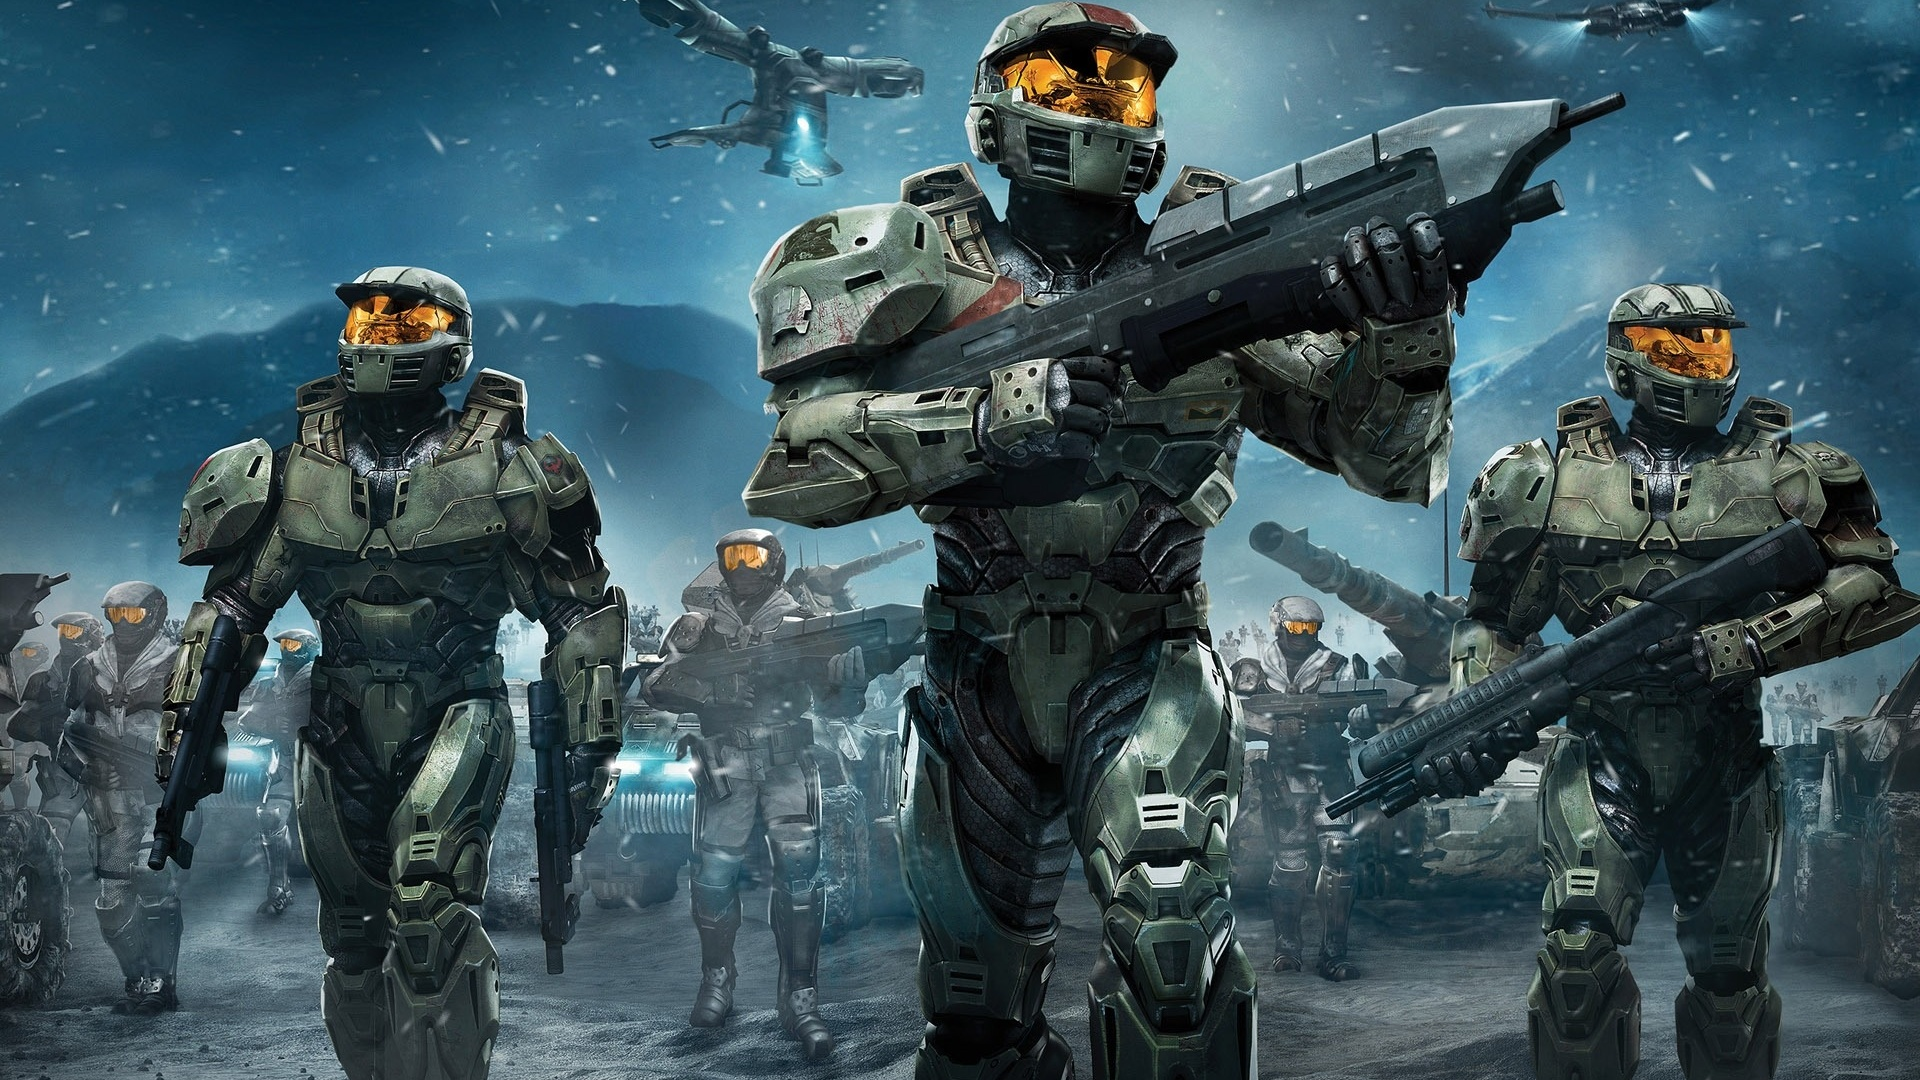 halo wars battles wallpaper - photo #24